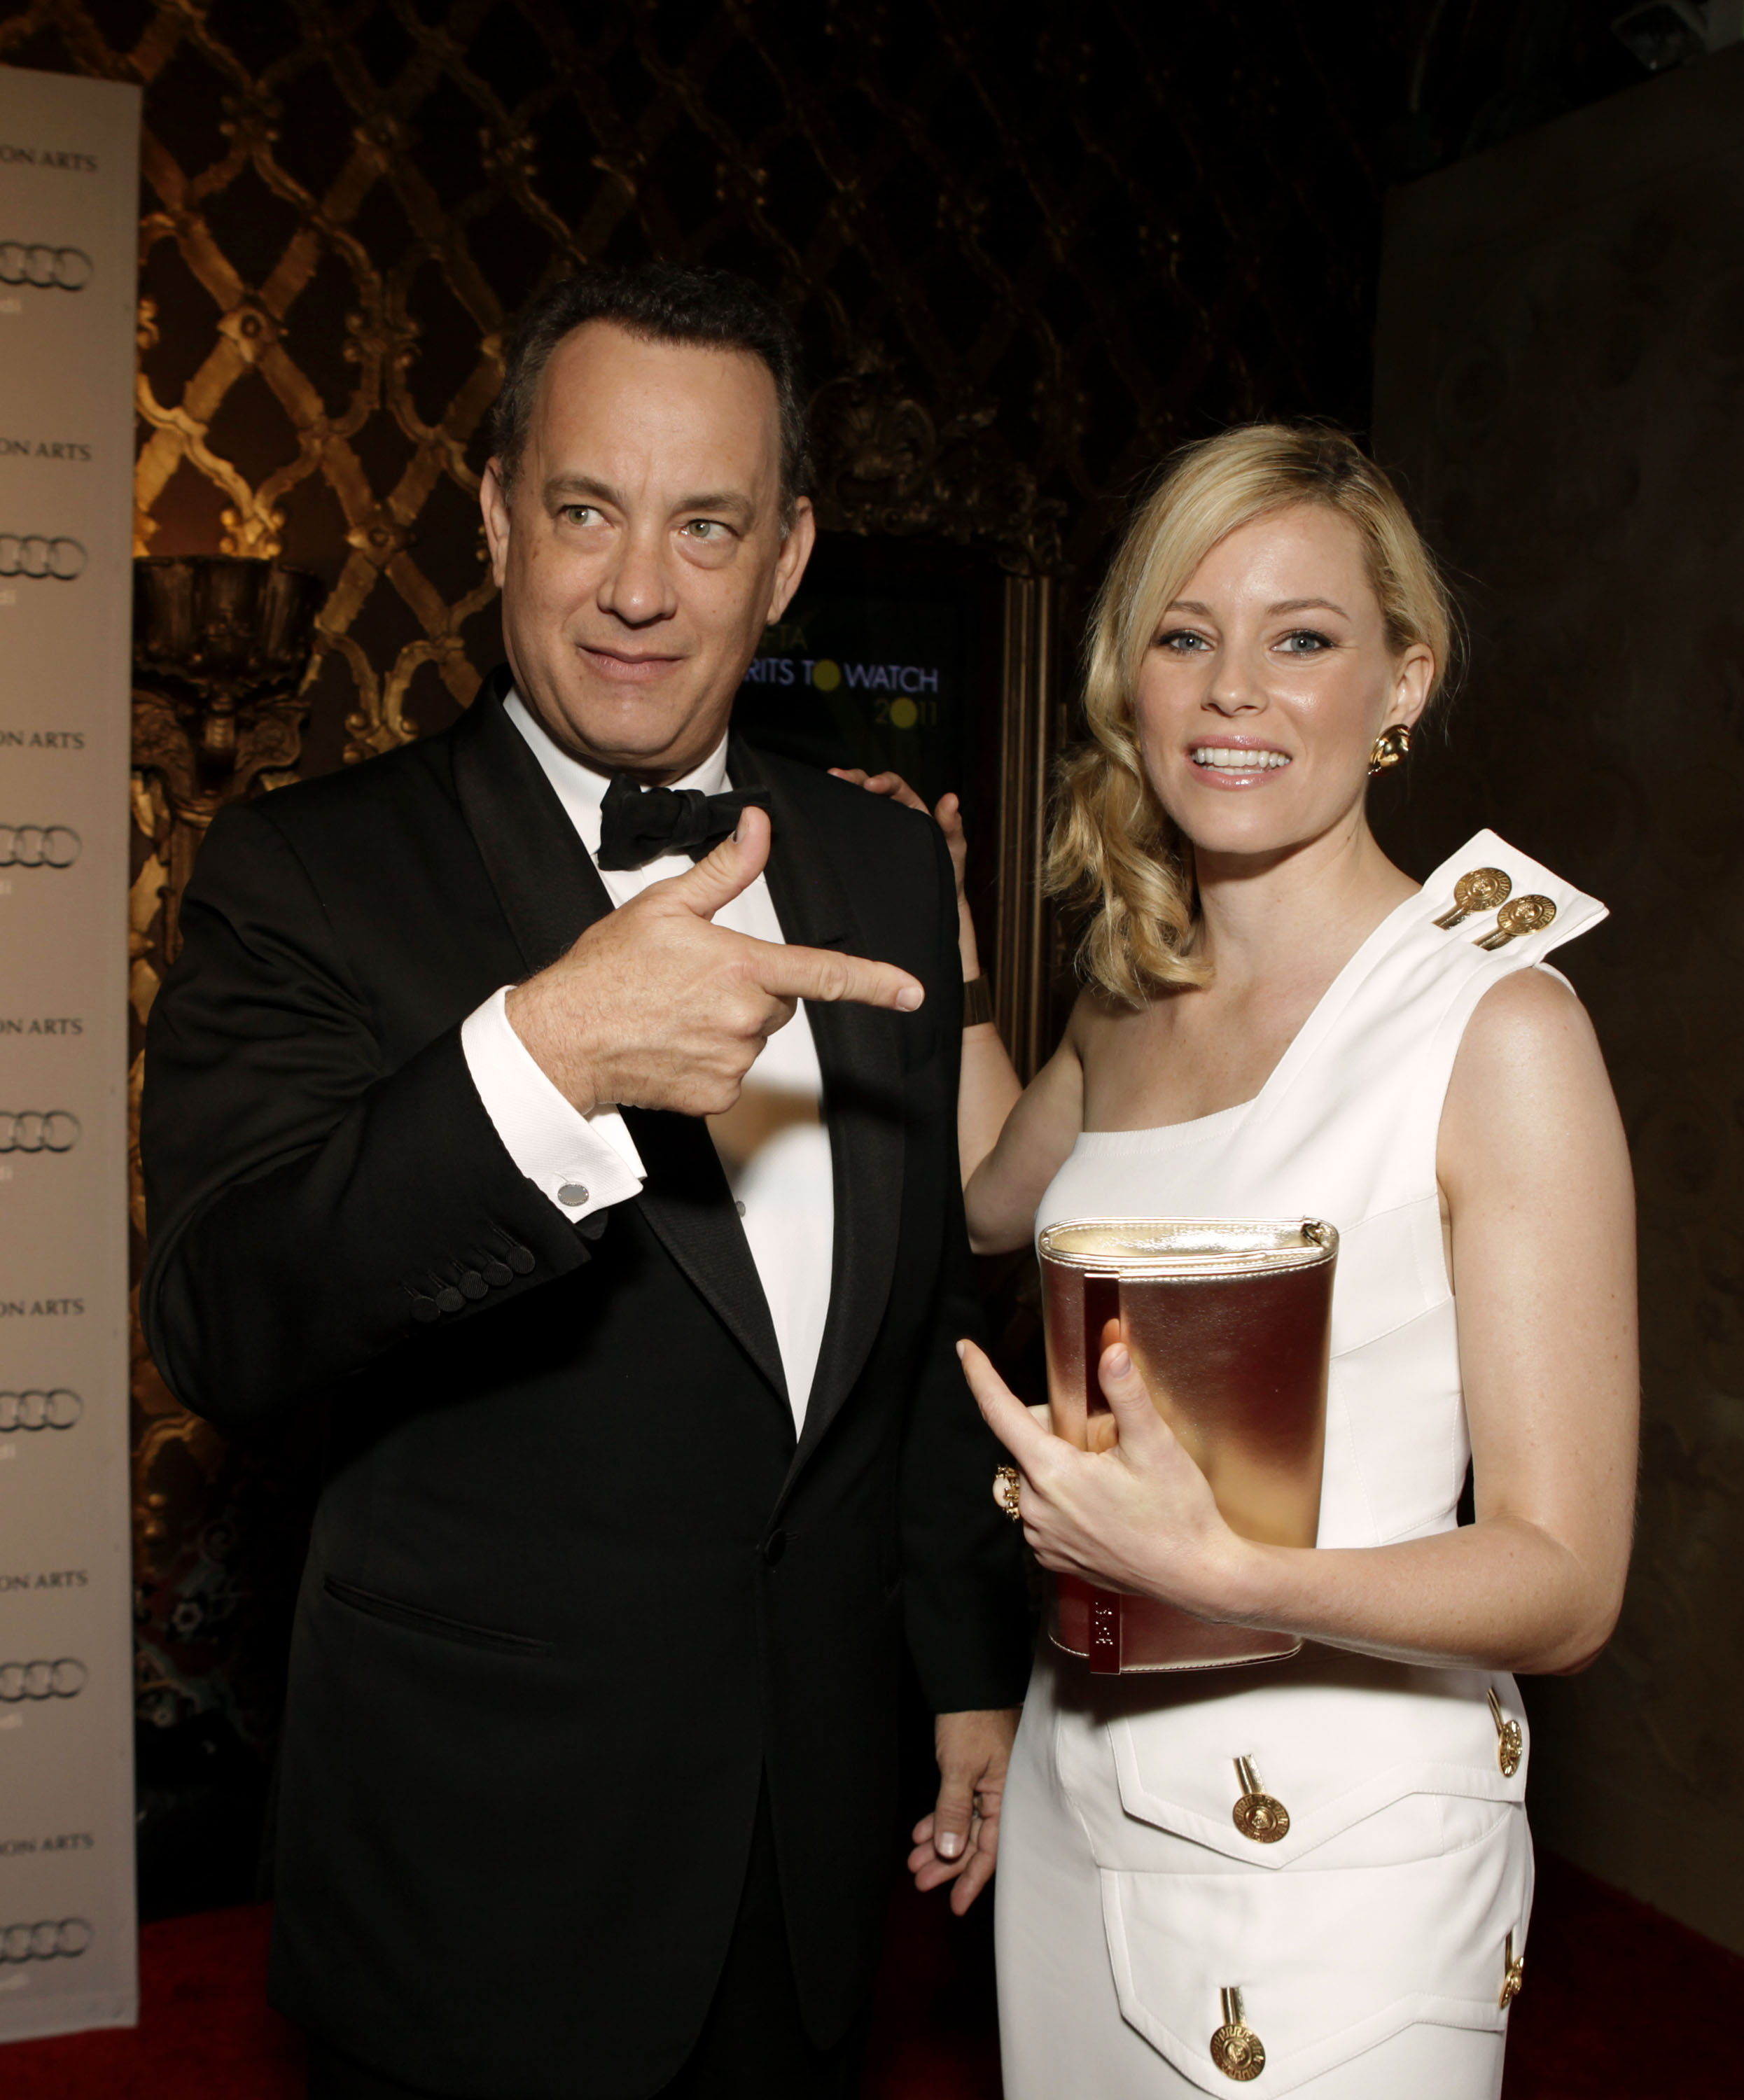 Tom Hanks and Elizabeth Banks at the BAFTA Brits to Watch event in LA.